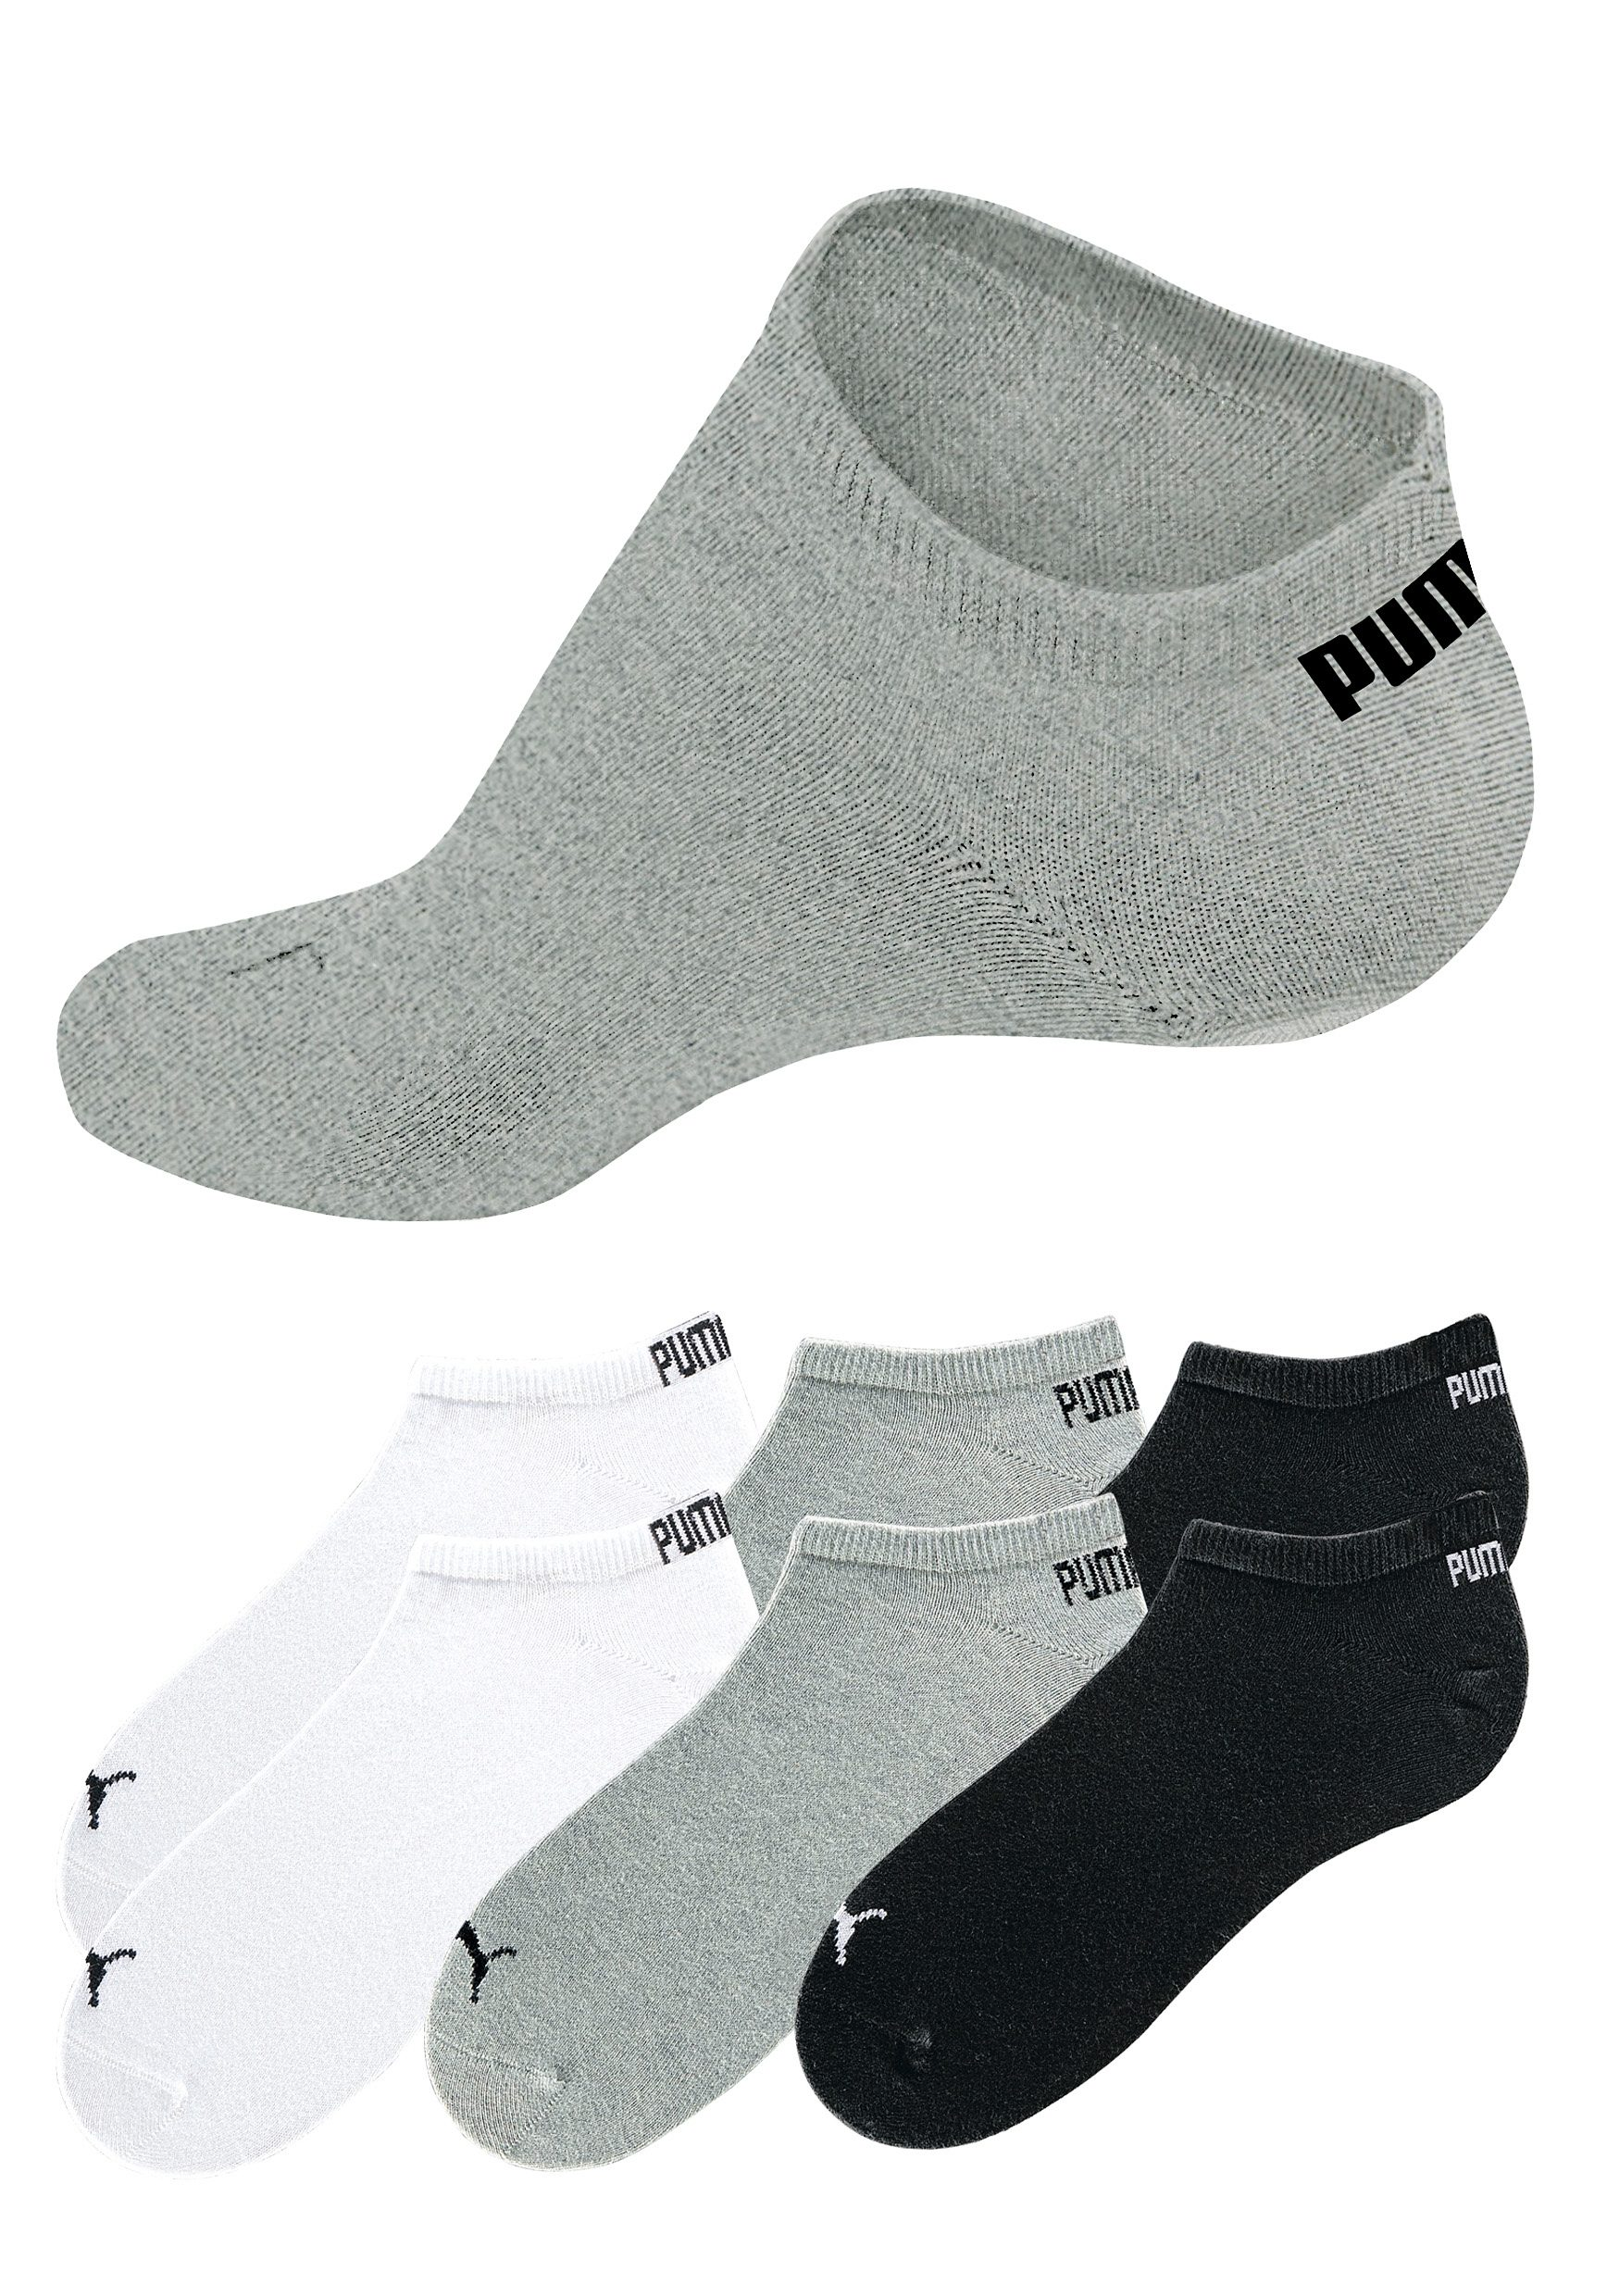 PUMA Sneakersocken (6 Paar)